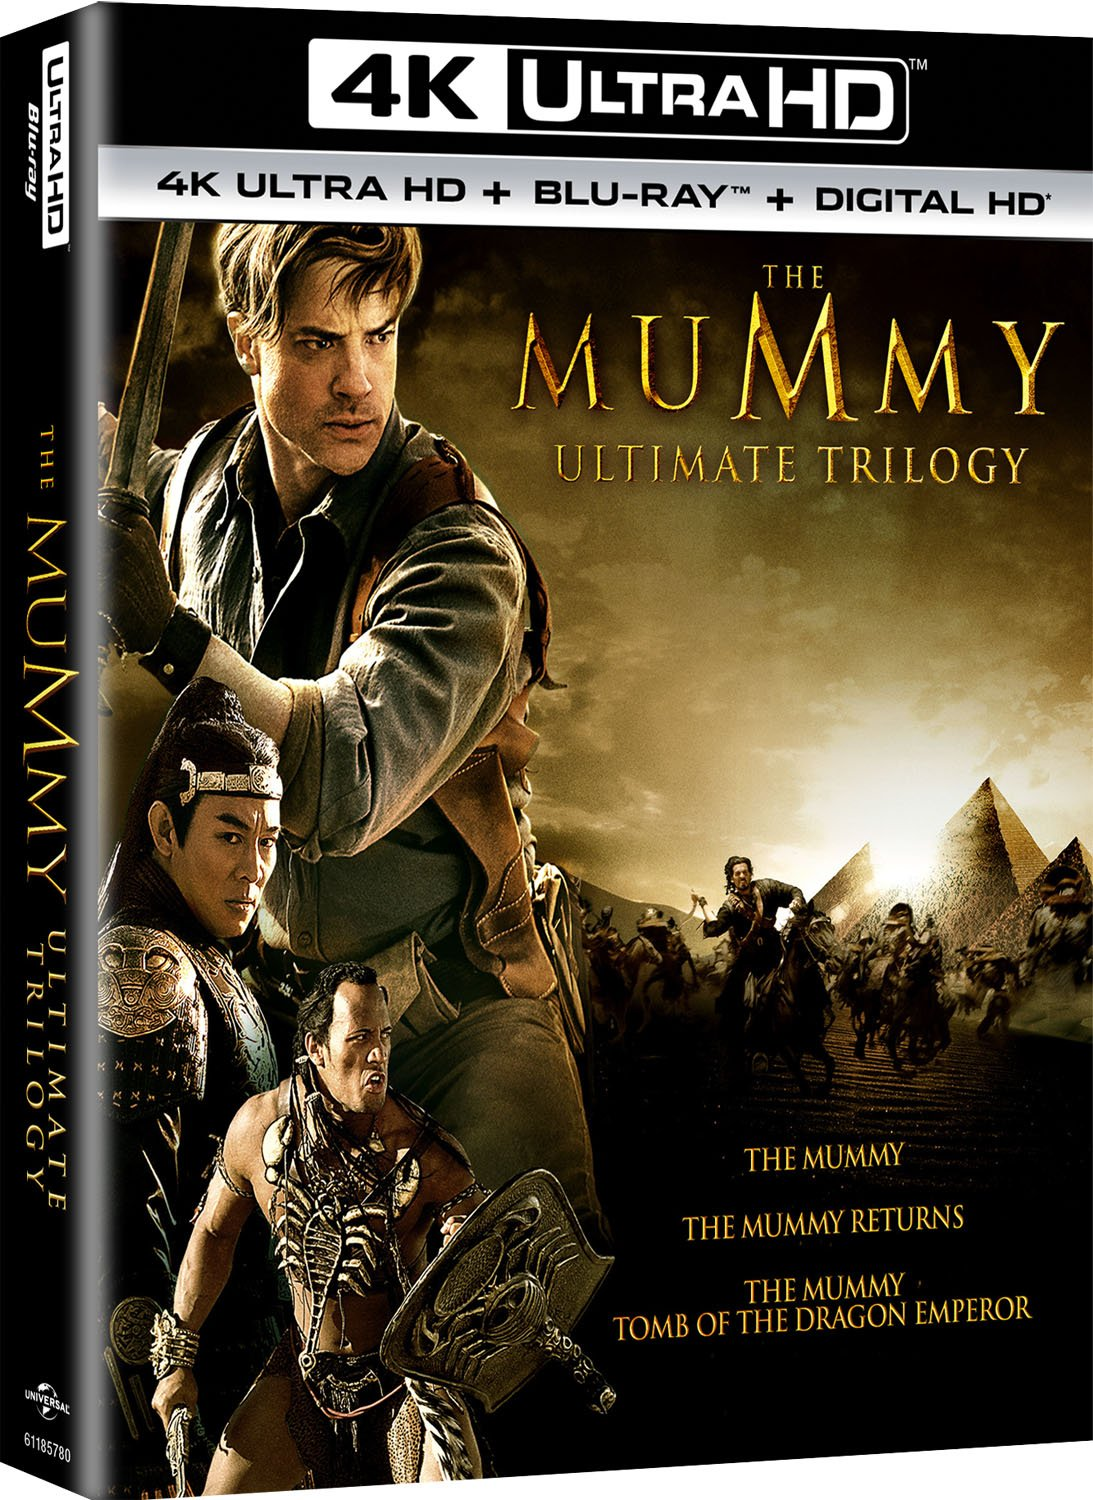 Amazon.com: The Mummy Ultimate Trilogy [Blu-ray]: Brendan Fraser ...